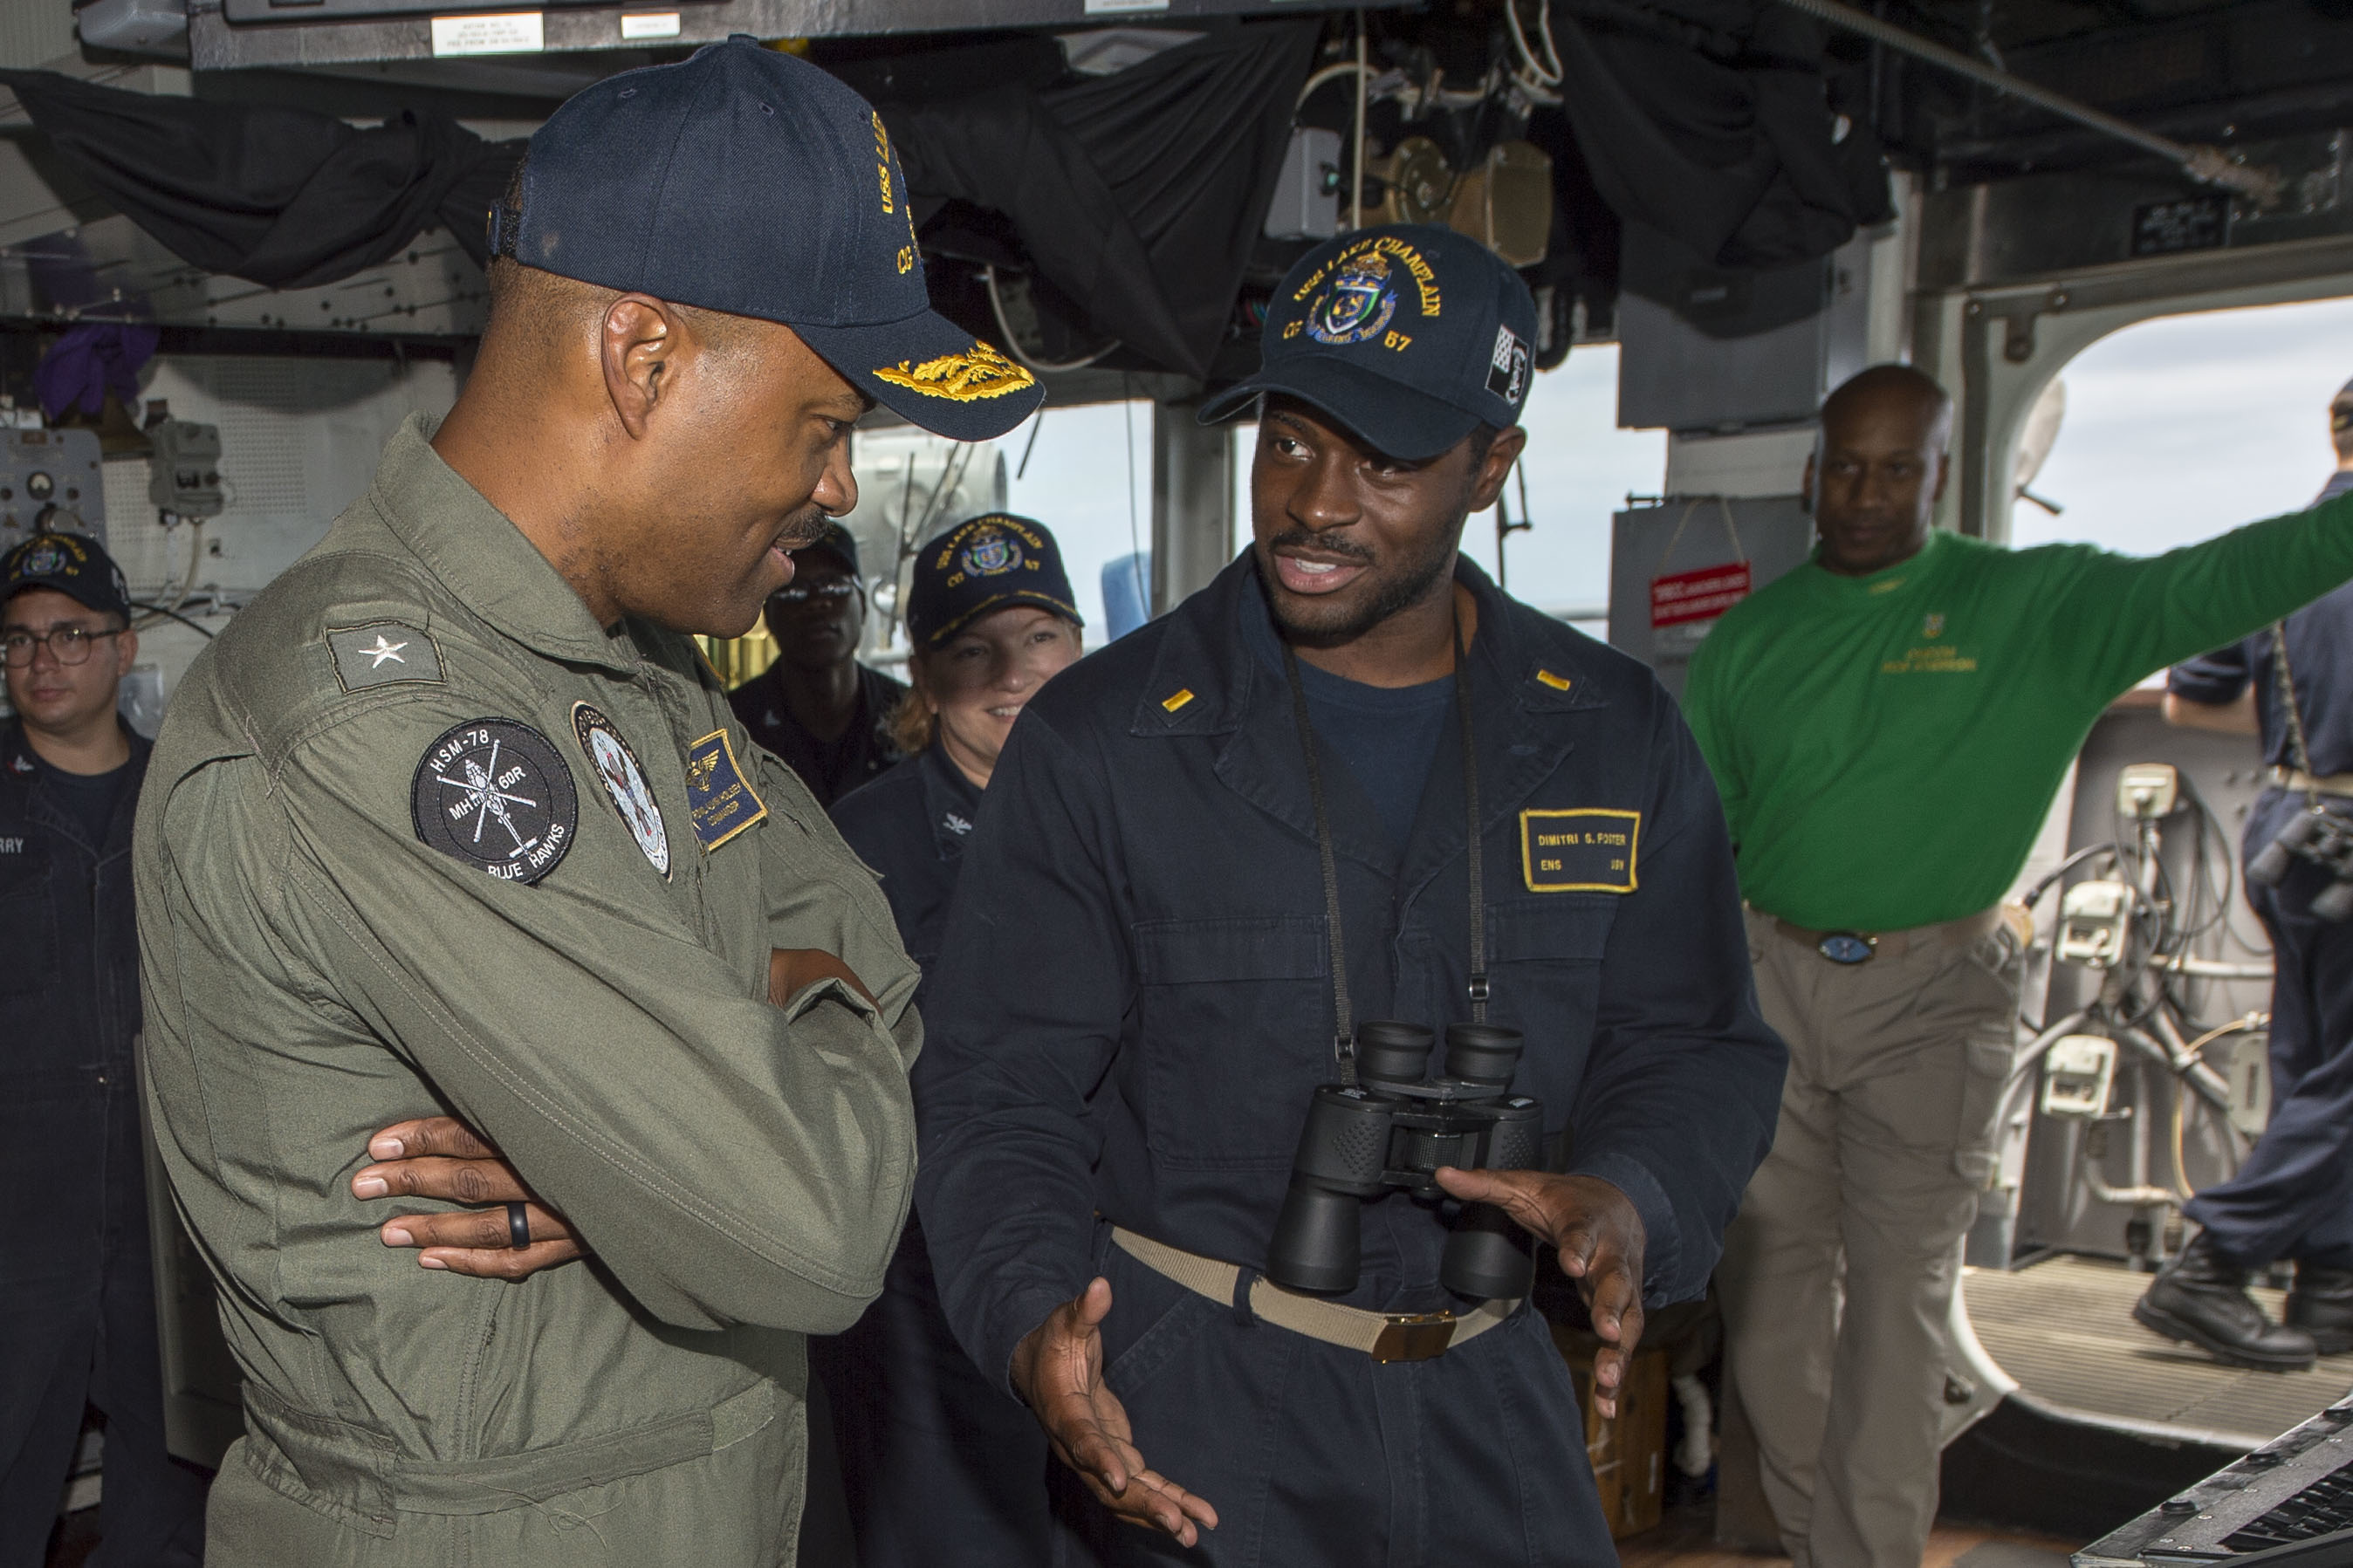 Caption: Rear Adm. Alvin Holsey (left) speaks with Ensign Dimitri Foster aboard the USS Lake Champlain in 2018. Holsey - one of the Navy's few Black admirals - heads the One Navy Task Force., Credit: Craig Z. Rodarte / U.S. Navy